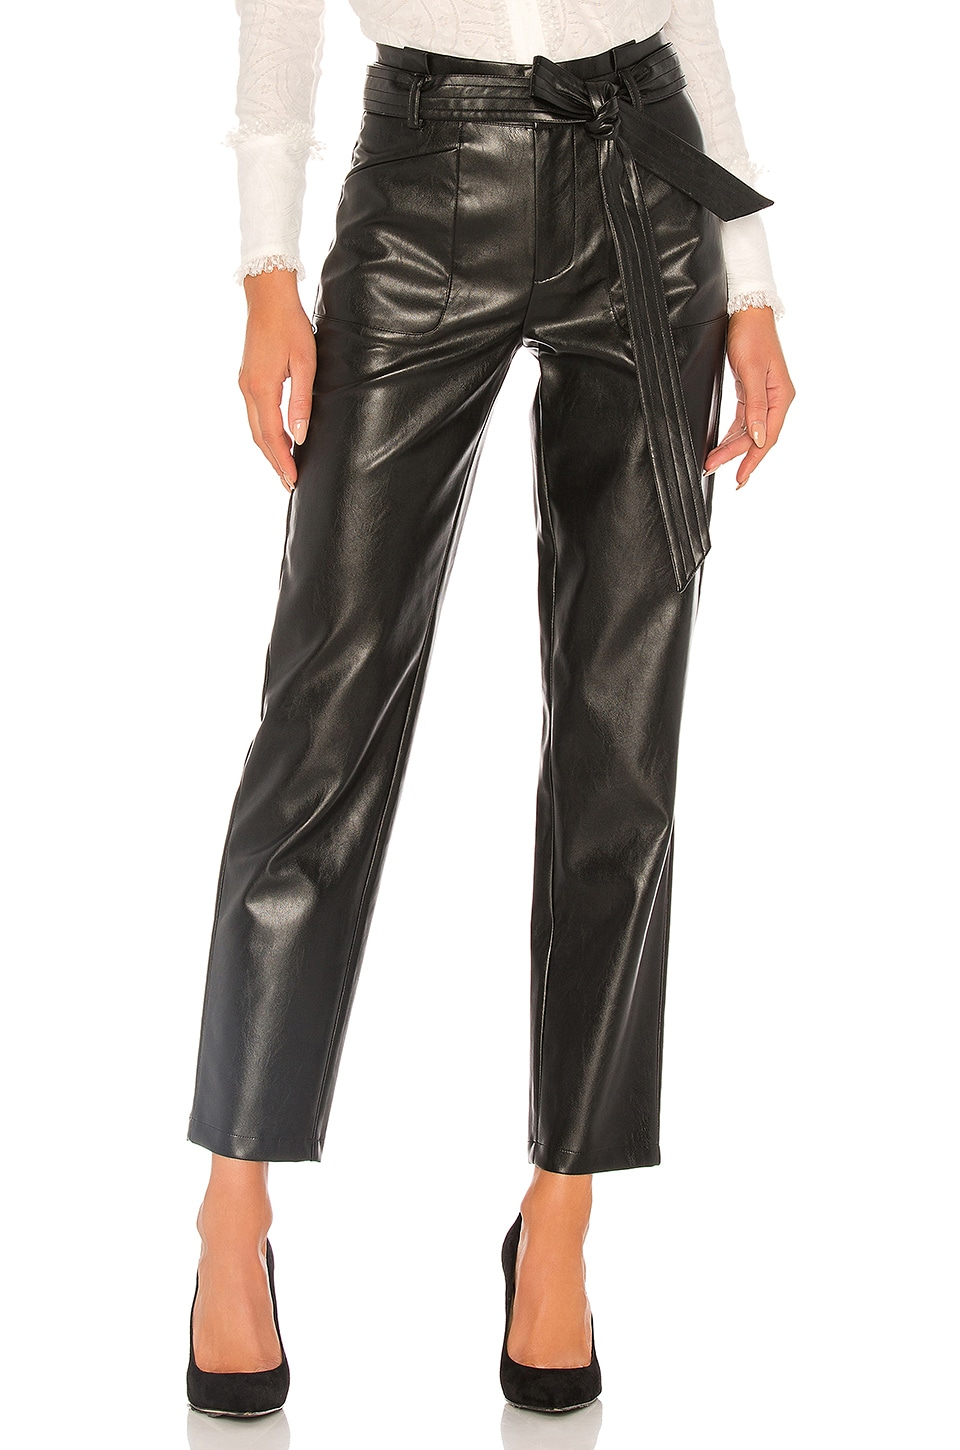 Alexis Pants Castile Vegan Leather Pant